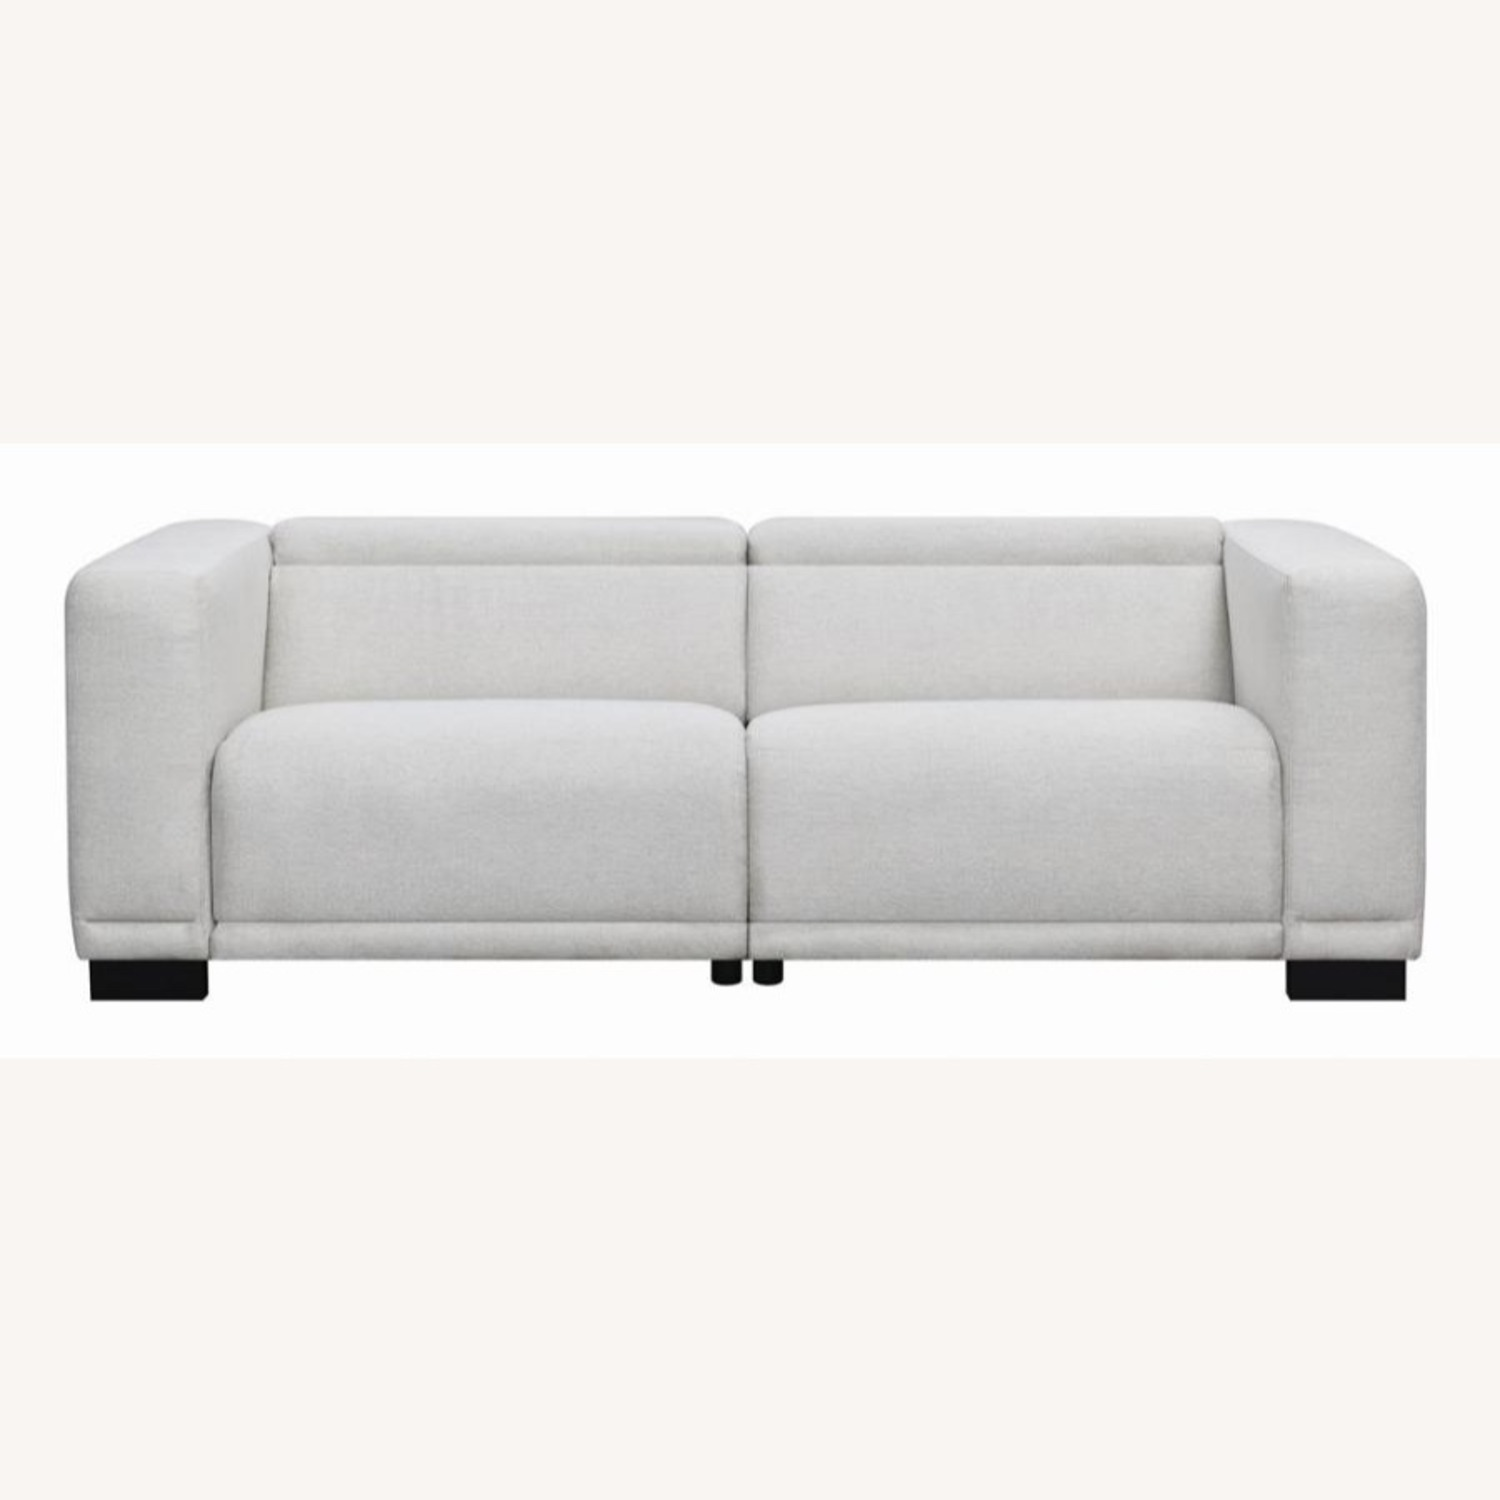 Power Recliner Sofa In Beige Performance Chenille - image-2